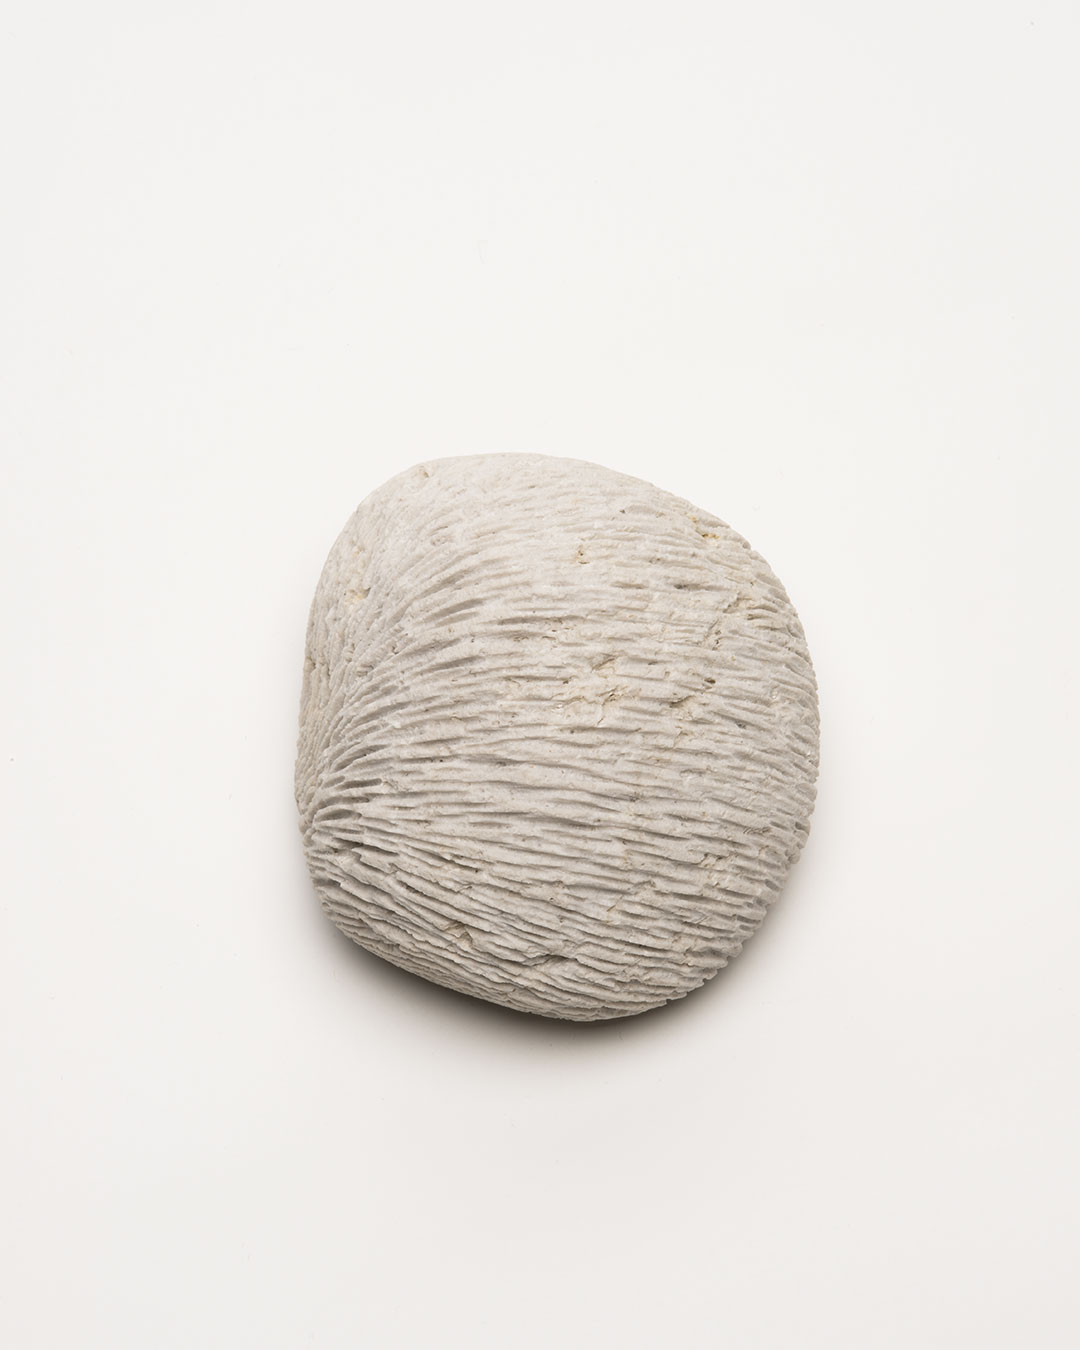 Vivi Touloumidi, What Will the Cosmos Say? 2013, brooch, pumice stone, steel, 90 x 75 x 50 mm, €280 (image: front)